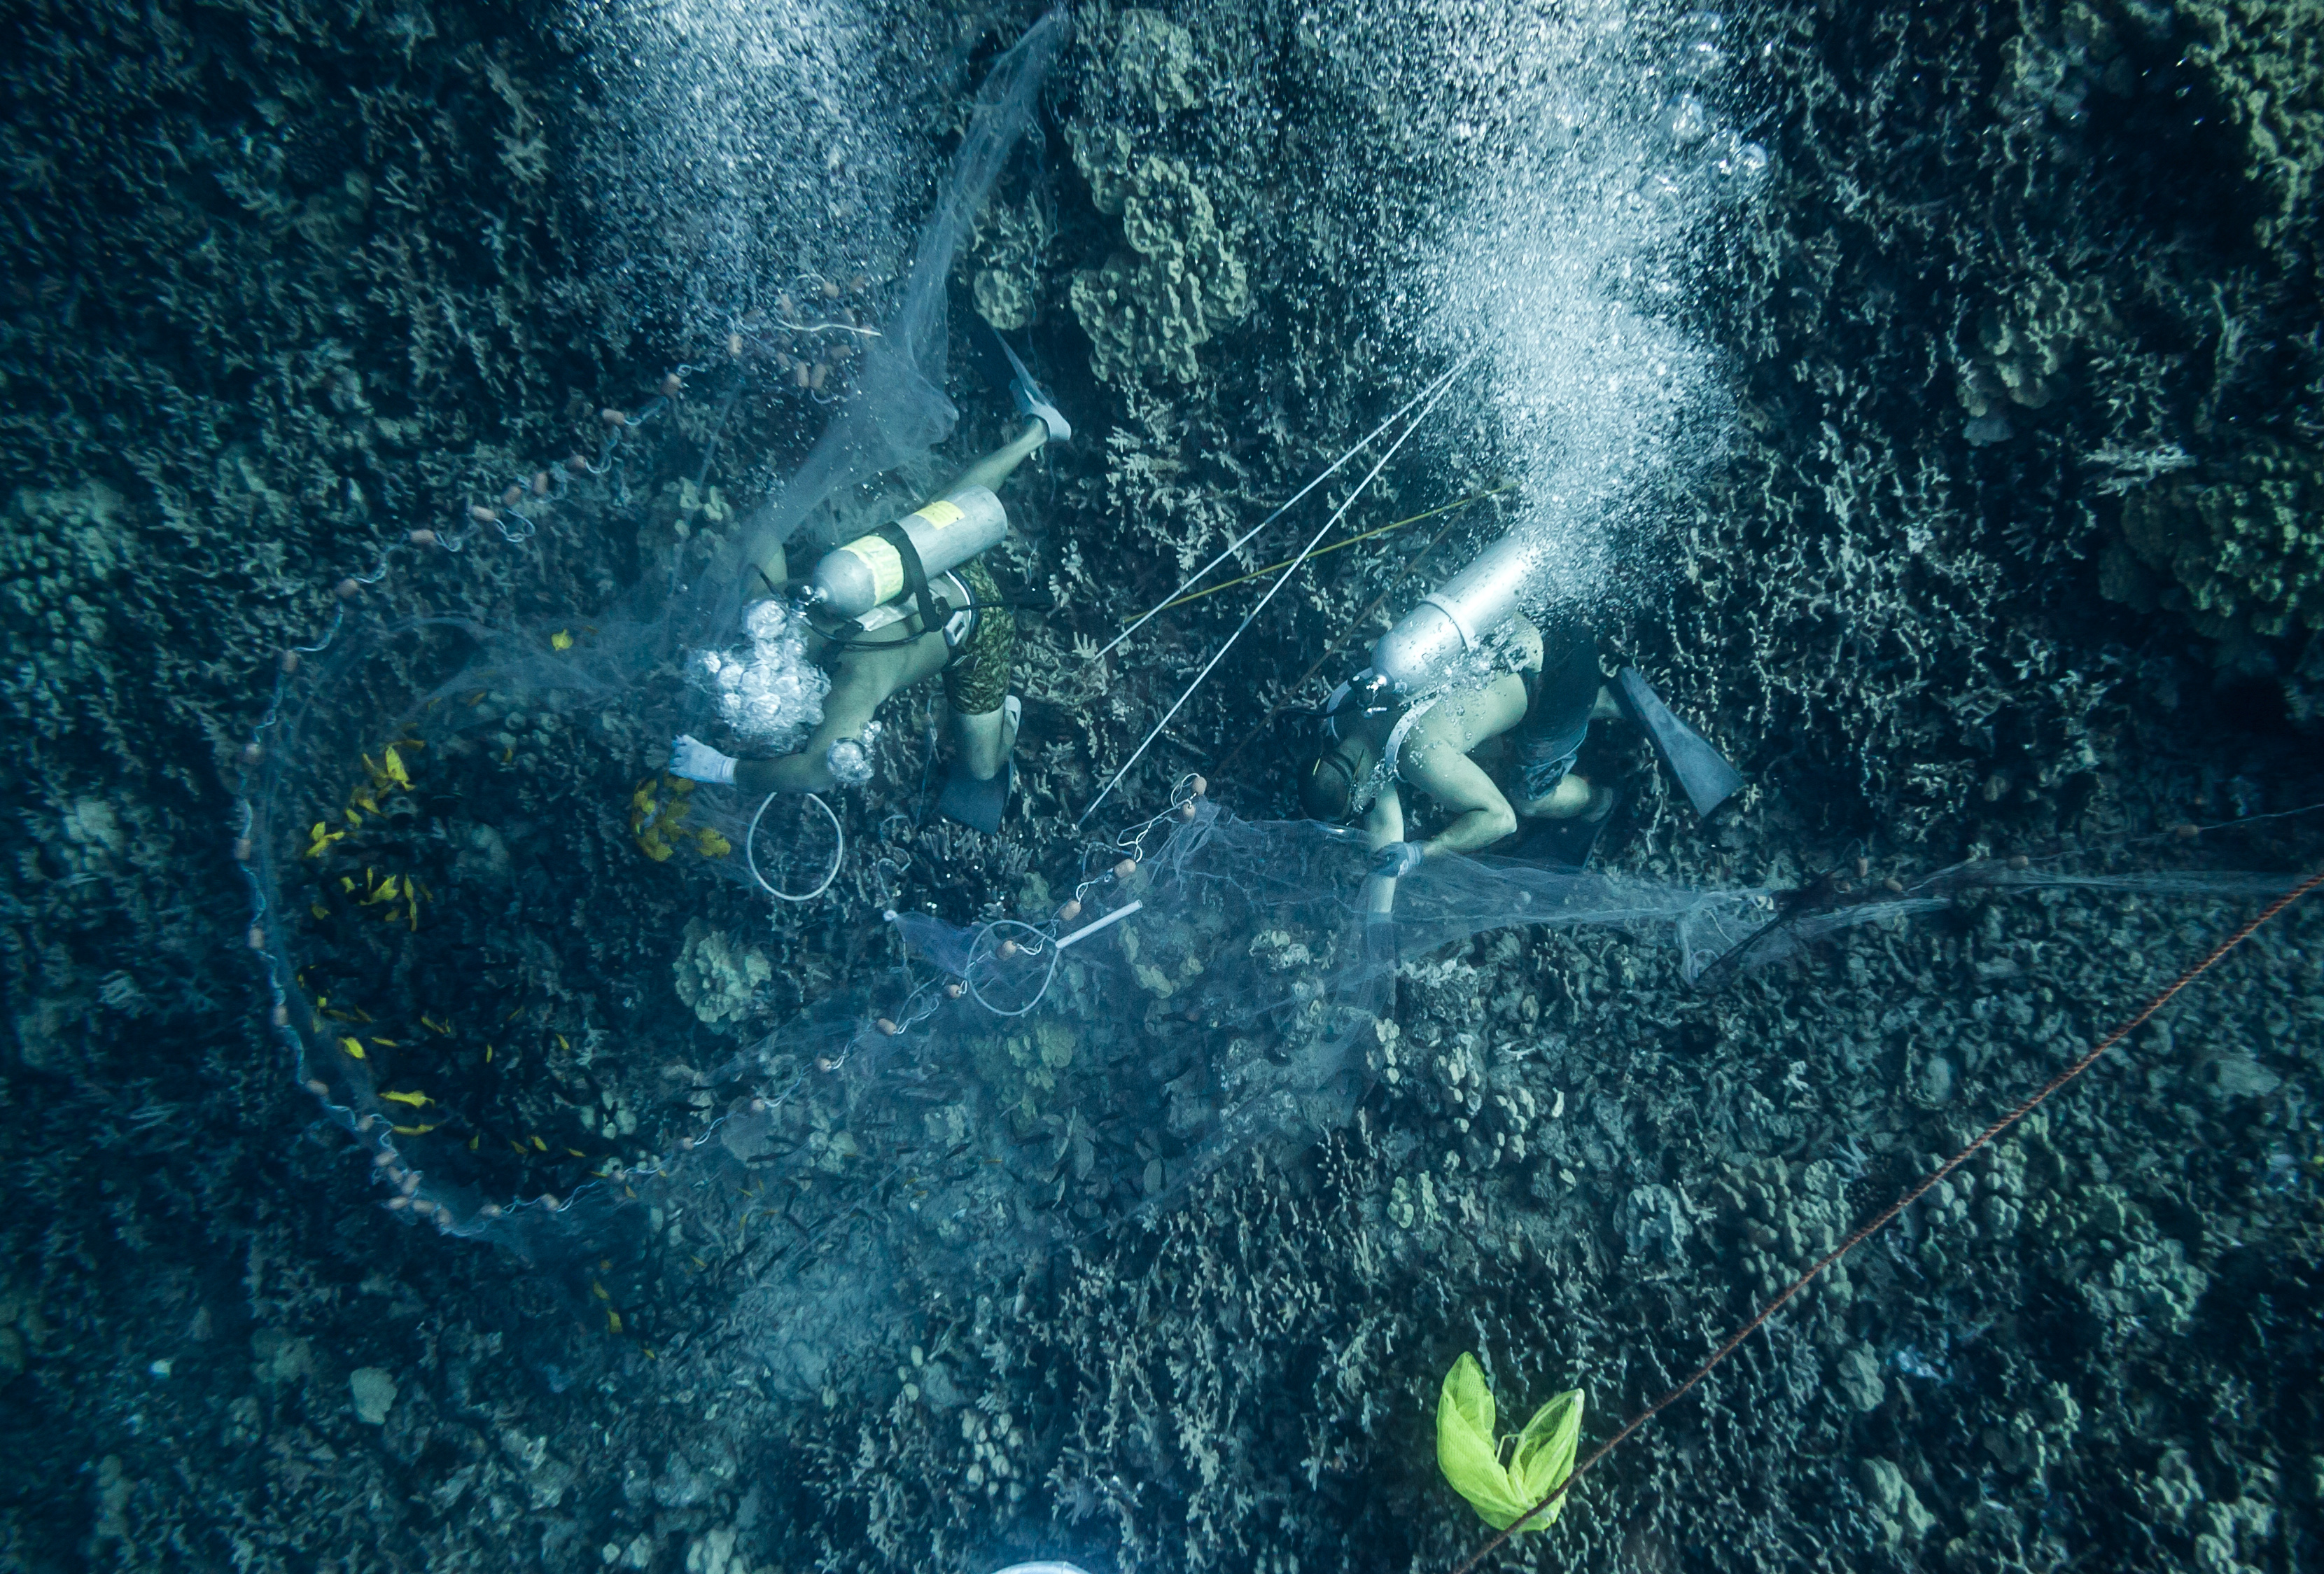 Aquarium collectors taking fish from a reef in Hawai'i.